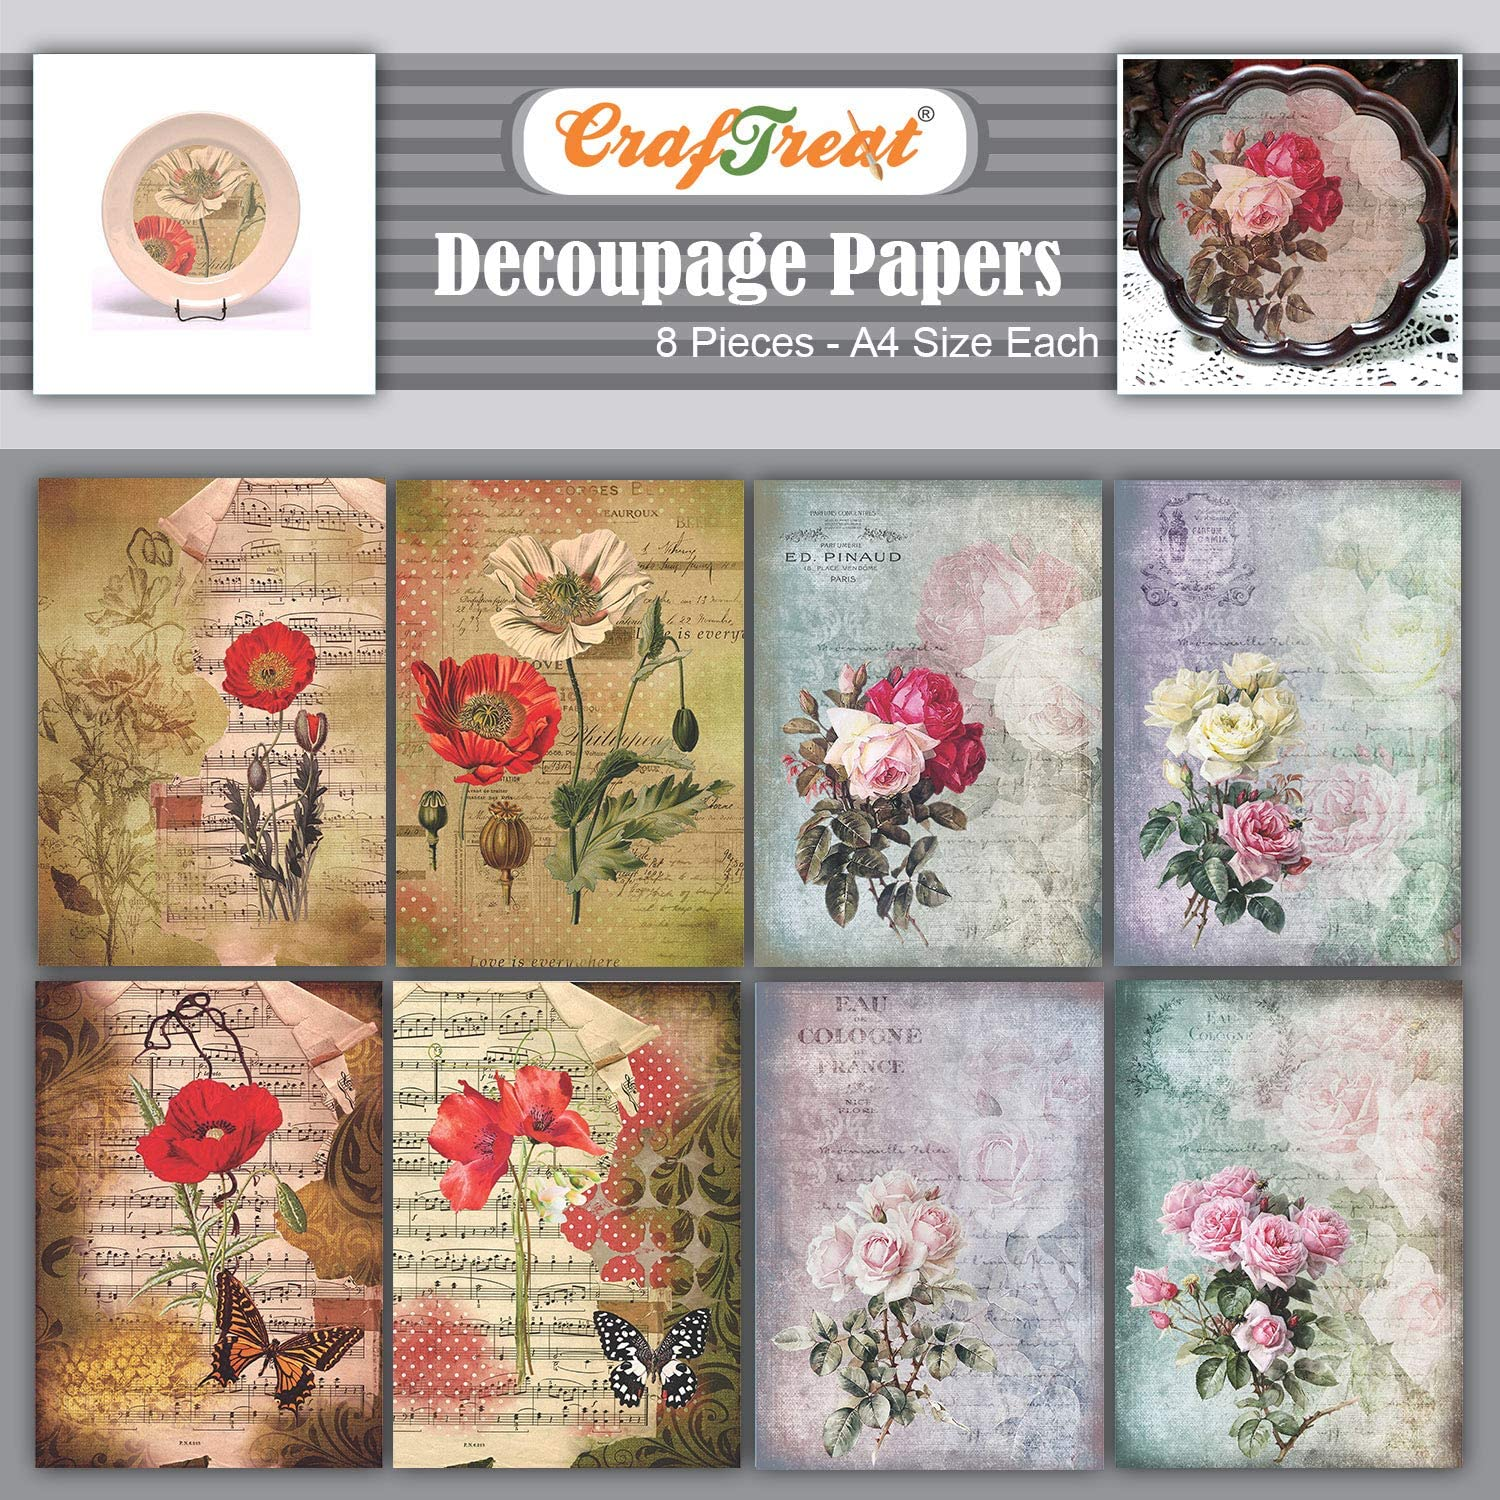 CrafTreat Rose Decoupage Paper for Crafts and Furniture - Poppies and Roses - Size: A4-8 Pcs - Furniture Decoupage Paper Roses - Decoupage Paper for Scrapbooking